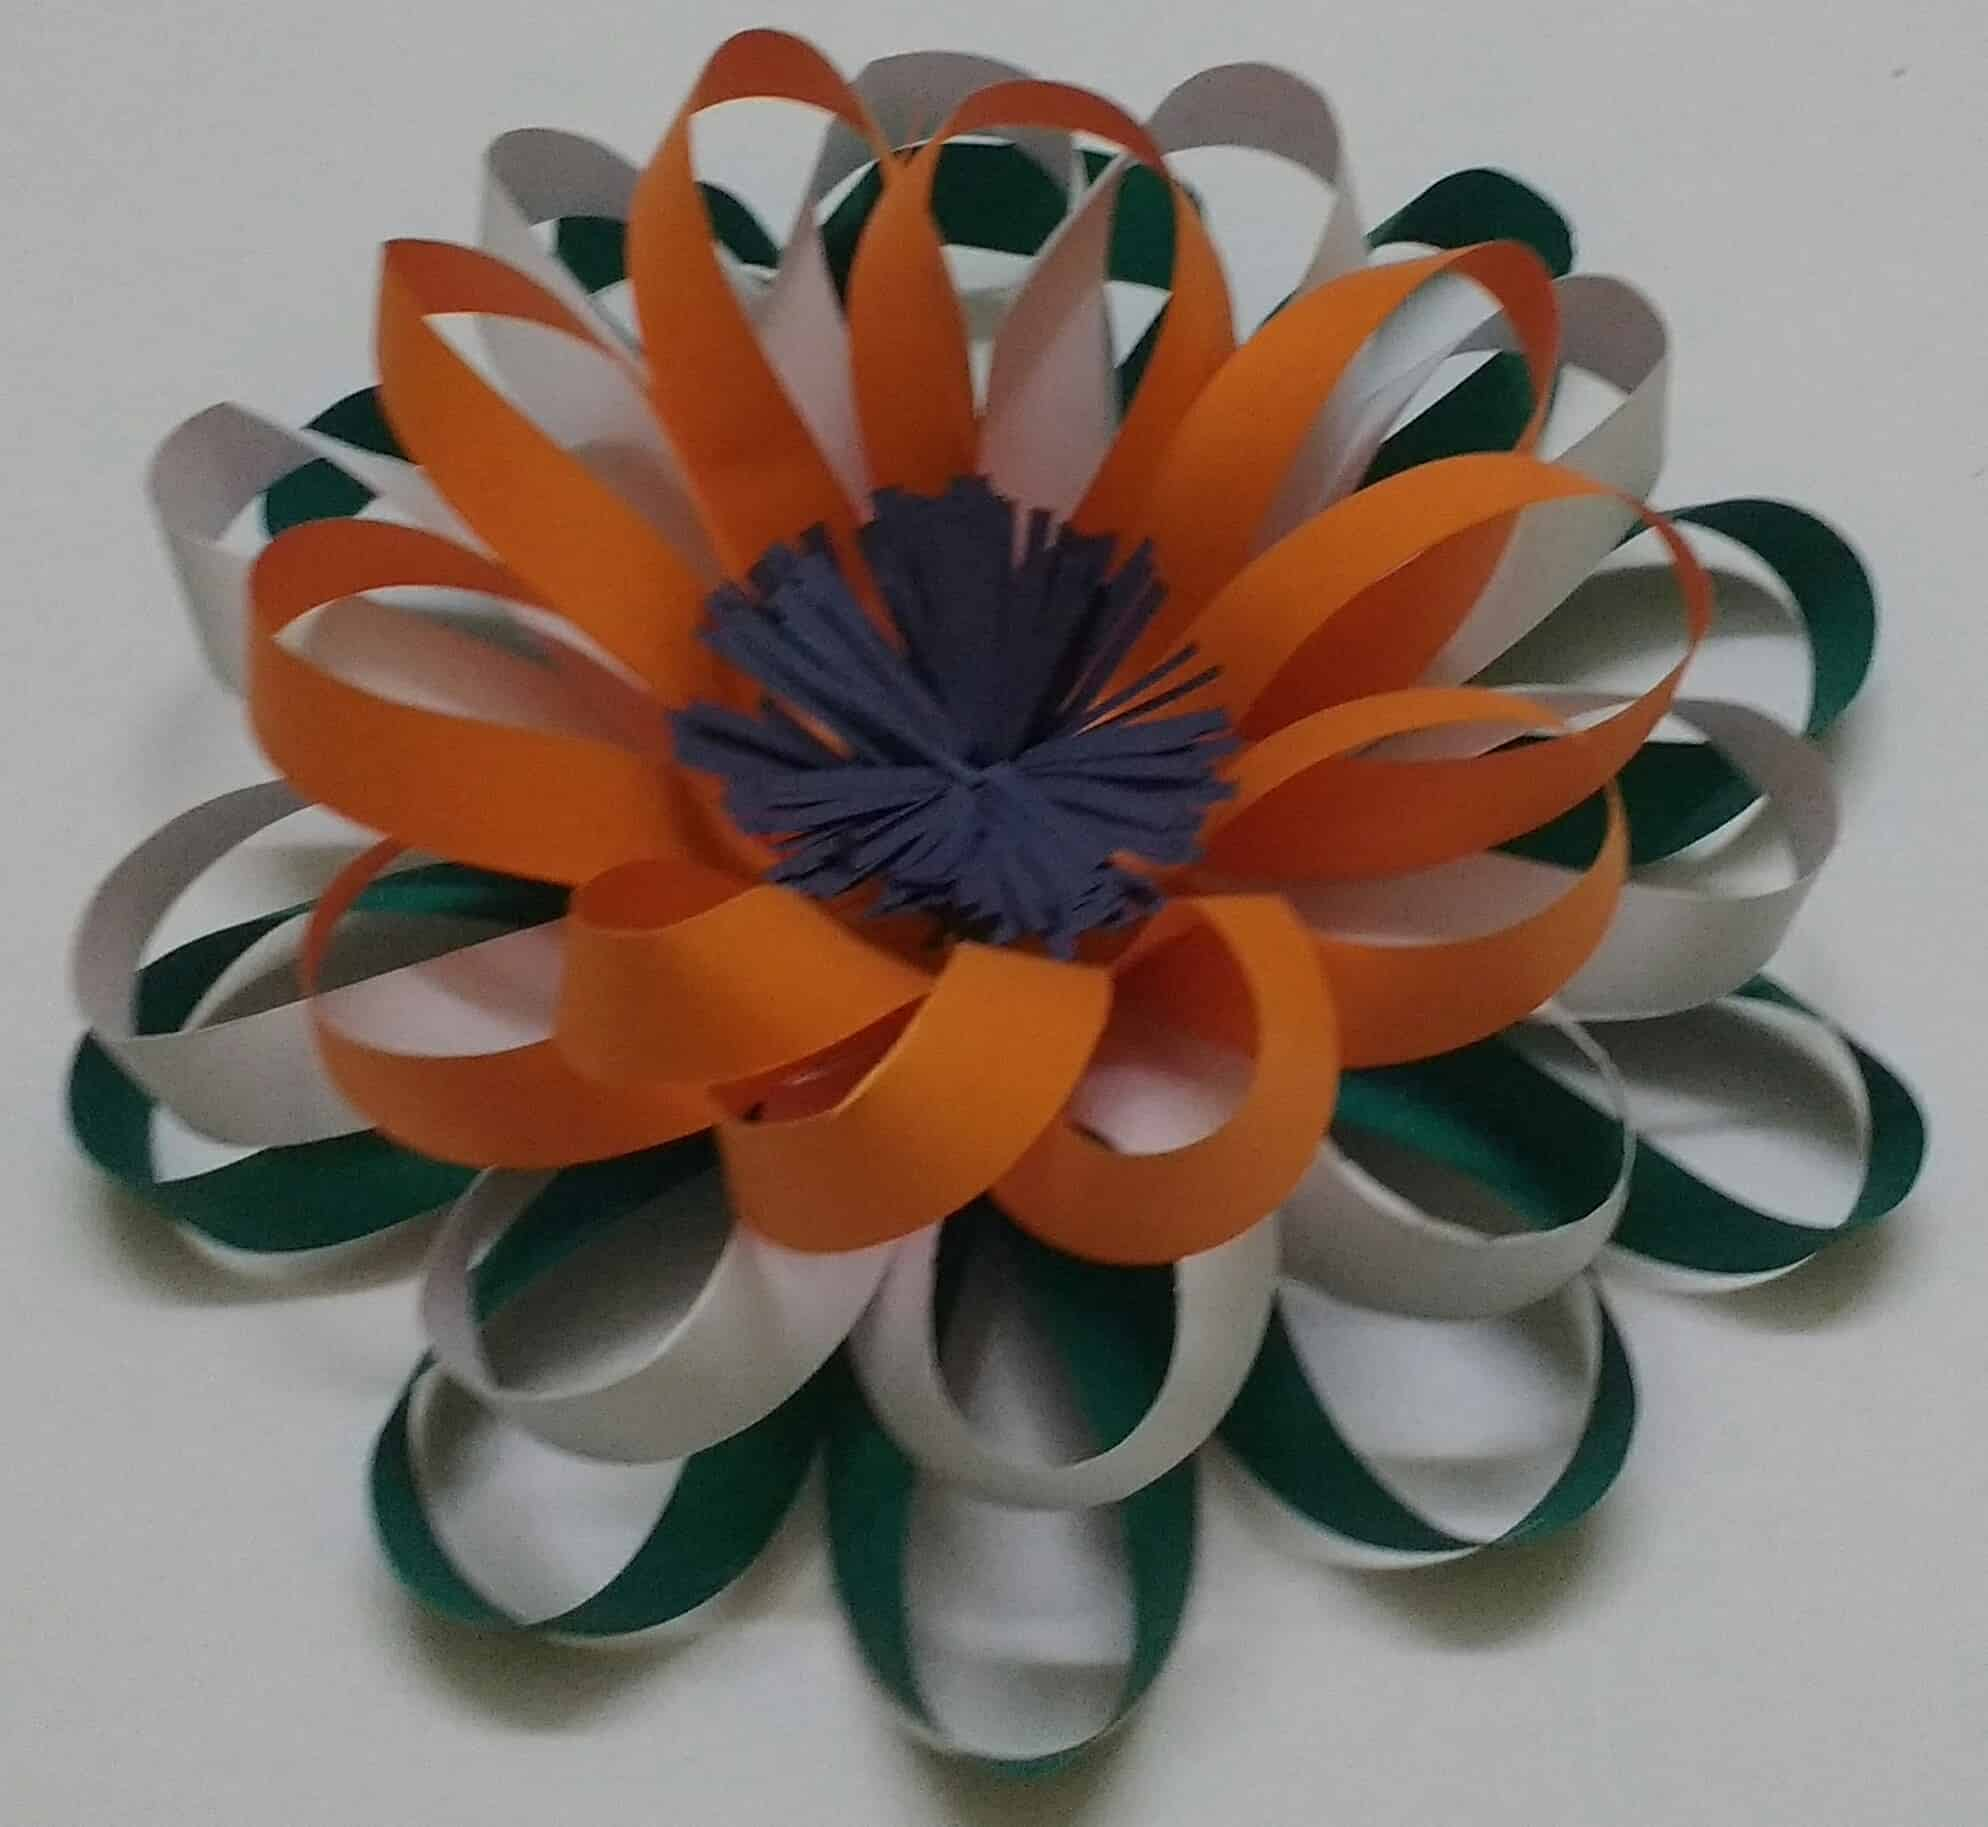 Easy tricolour paper flower republic day and independence day republic day crafts tricolor paper flowers independence day crafts mightylinksfo